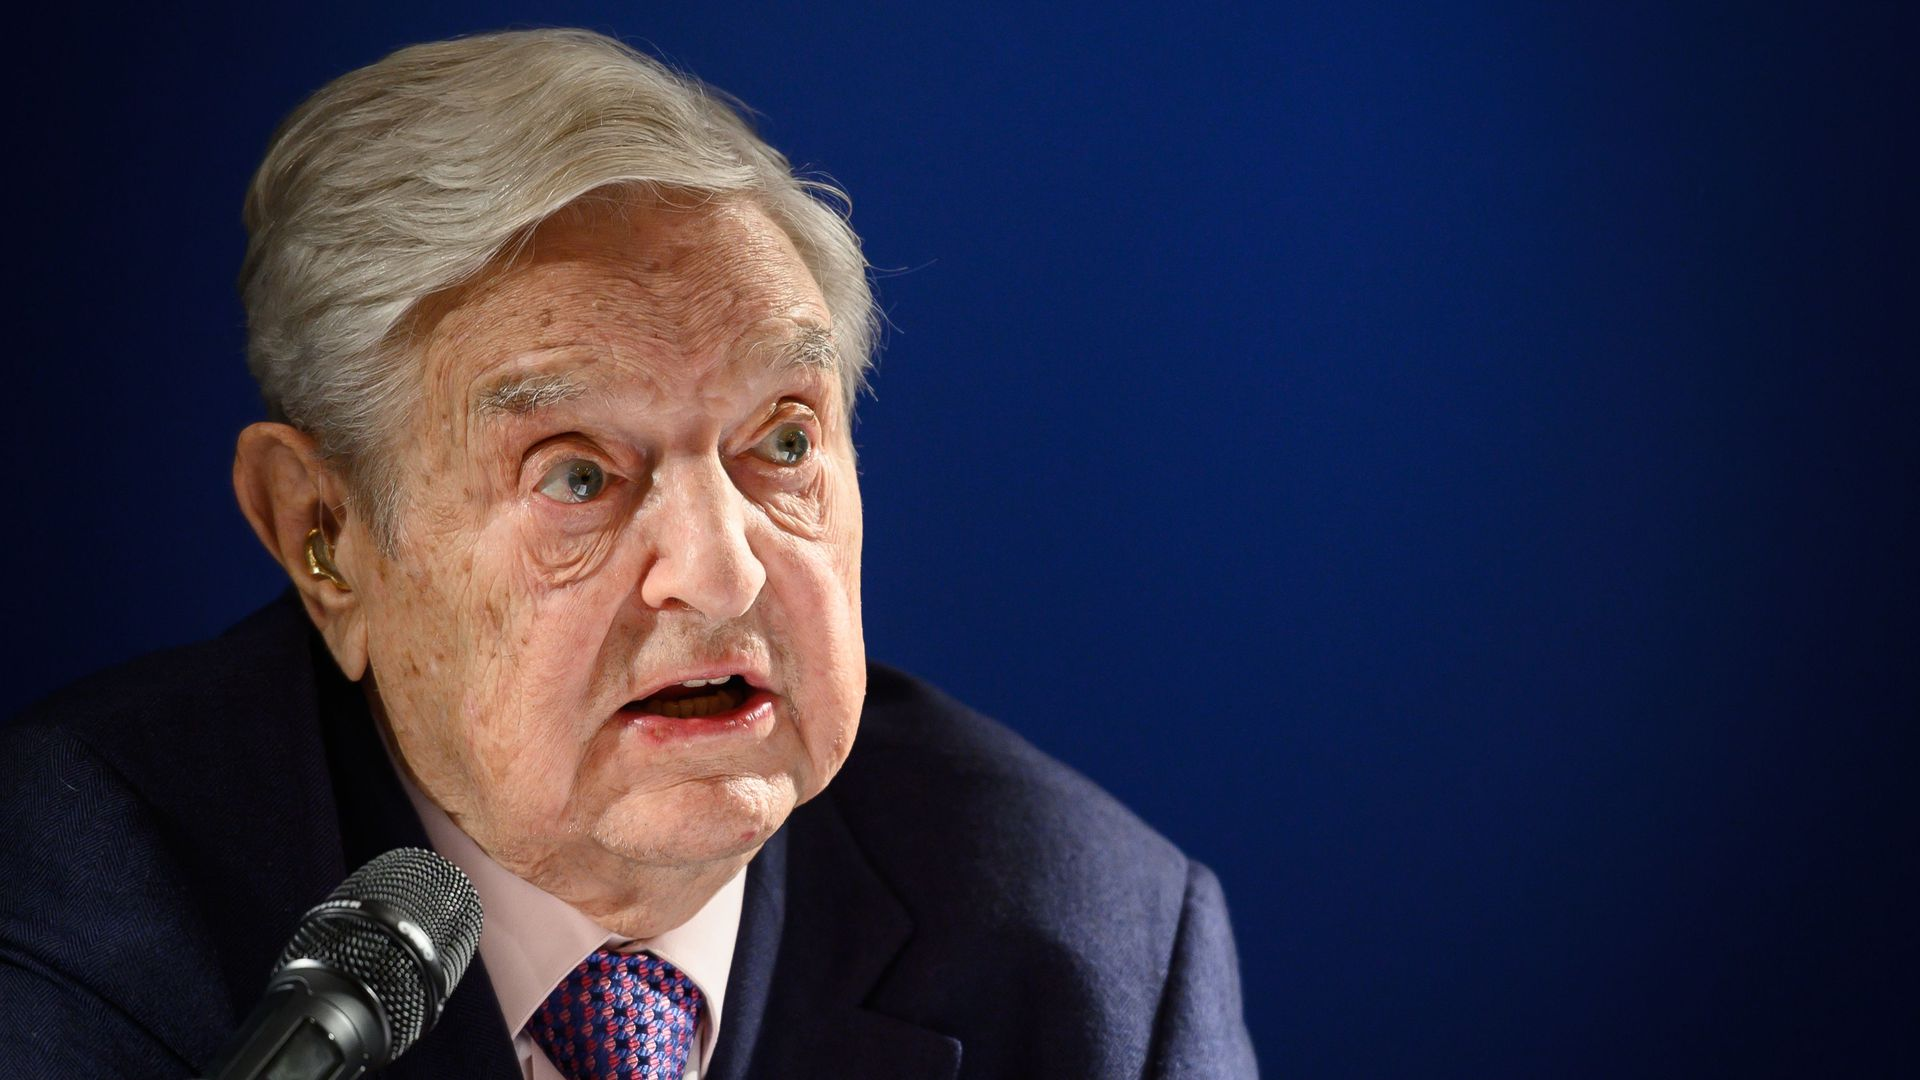 Soros warns Trump about a likely economic boom before the 2020 election